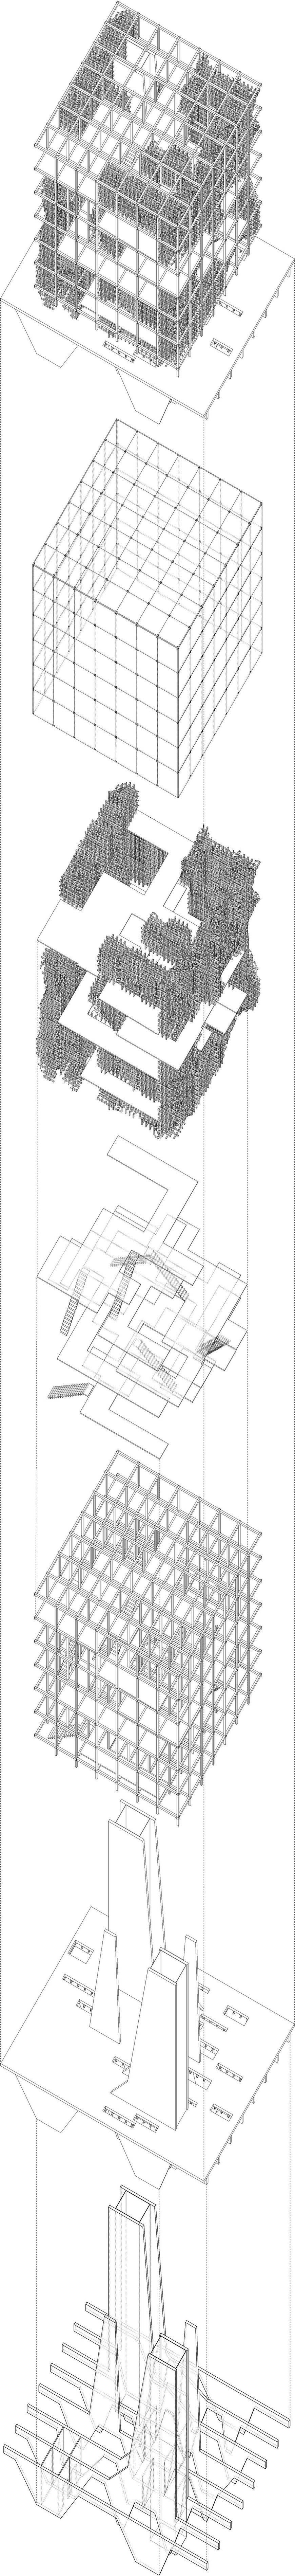 Exploded axonometric drawing showing seven building components and building systems of the project.